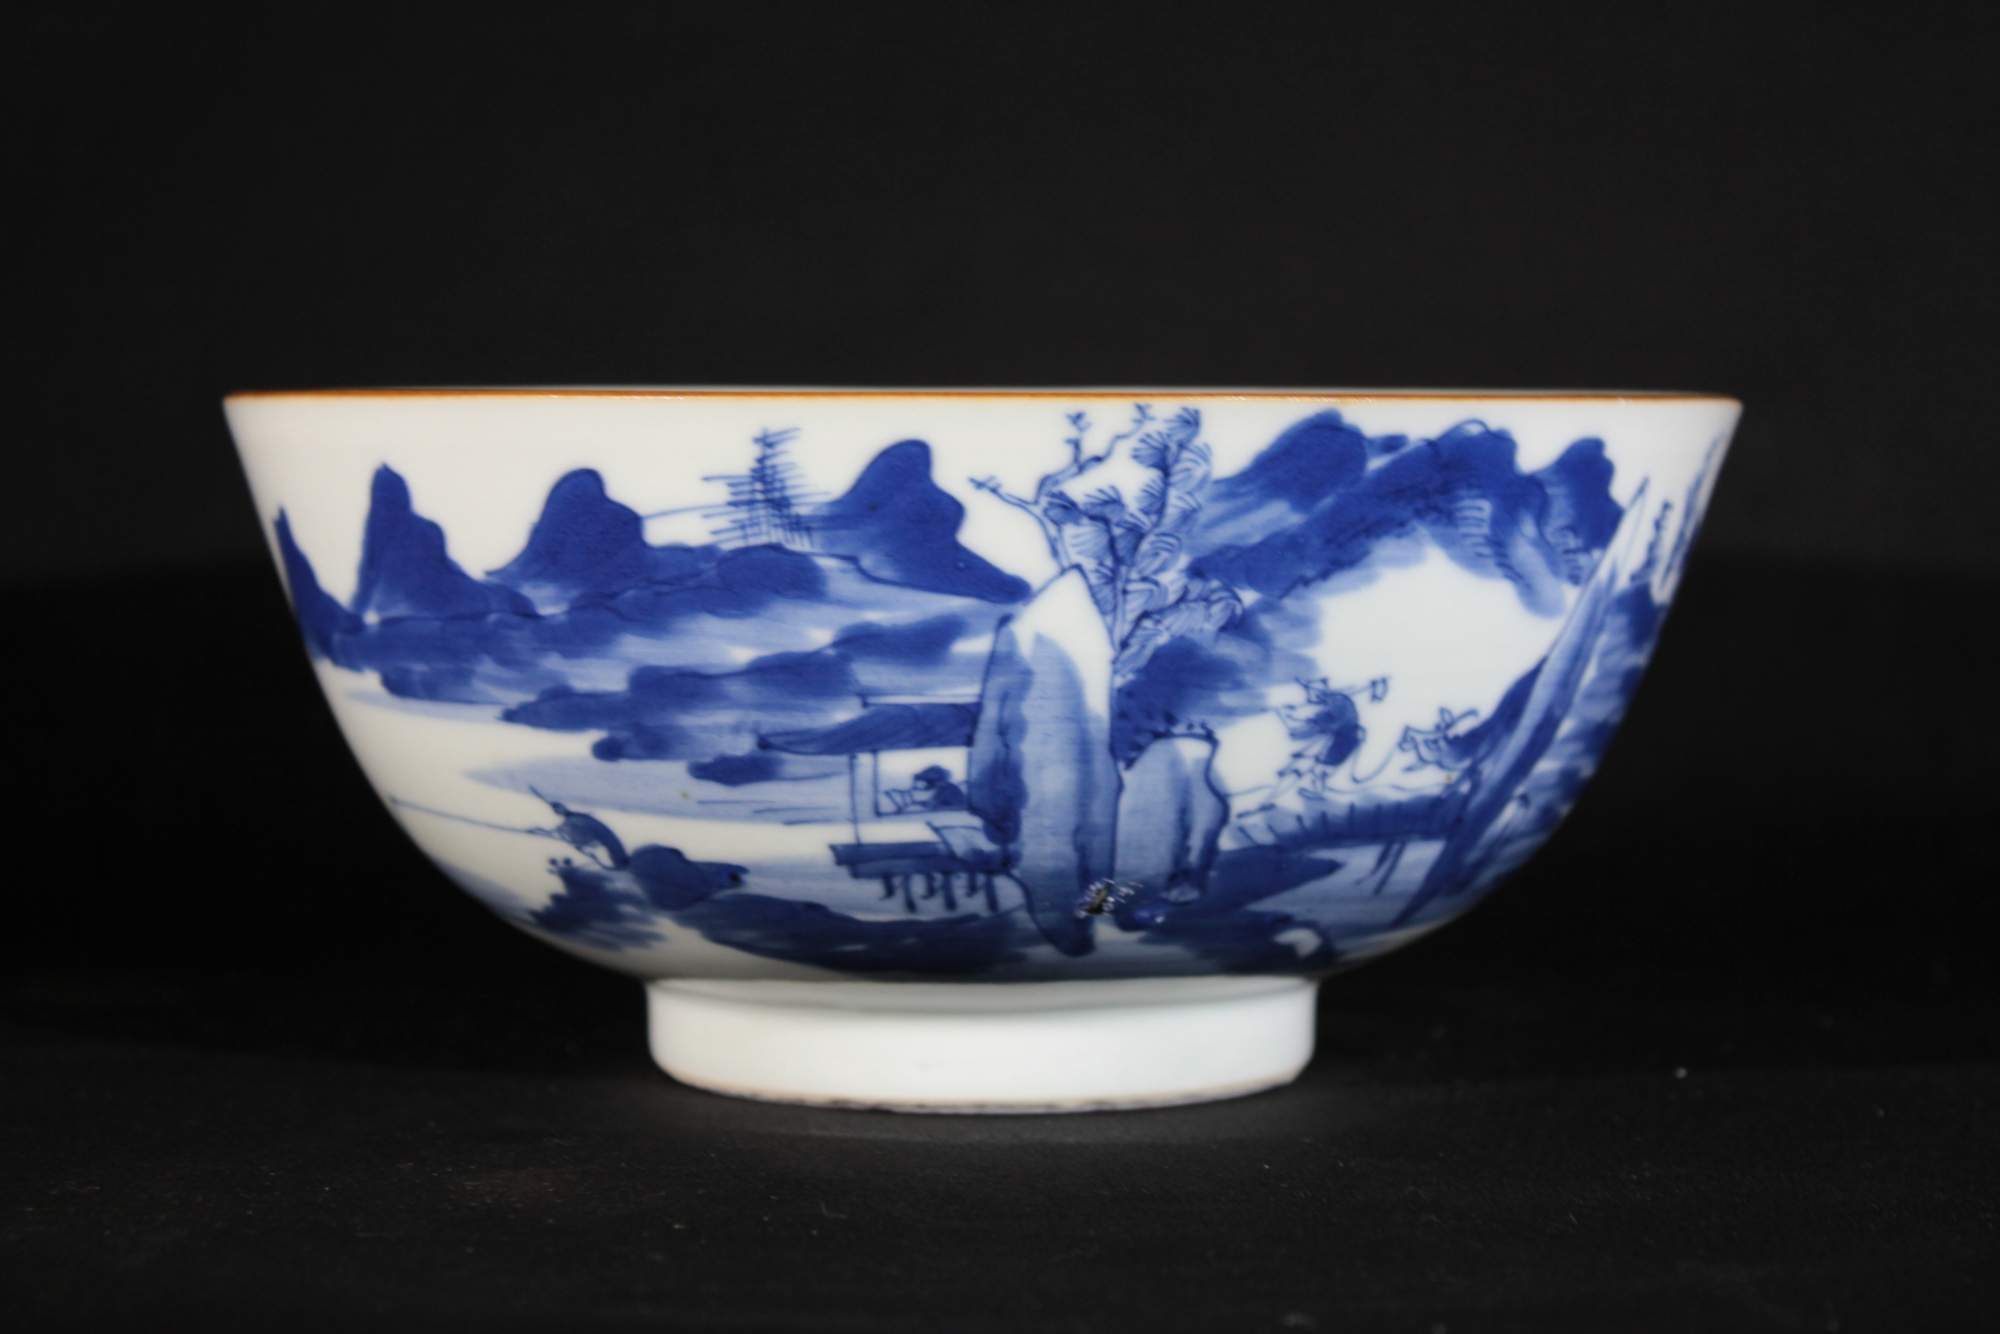 Decorating With Blue And White China: A Blue And White Porcelain Chinese Bowl With Landscape